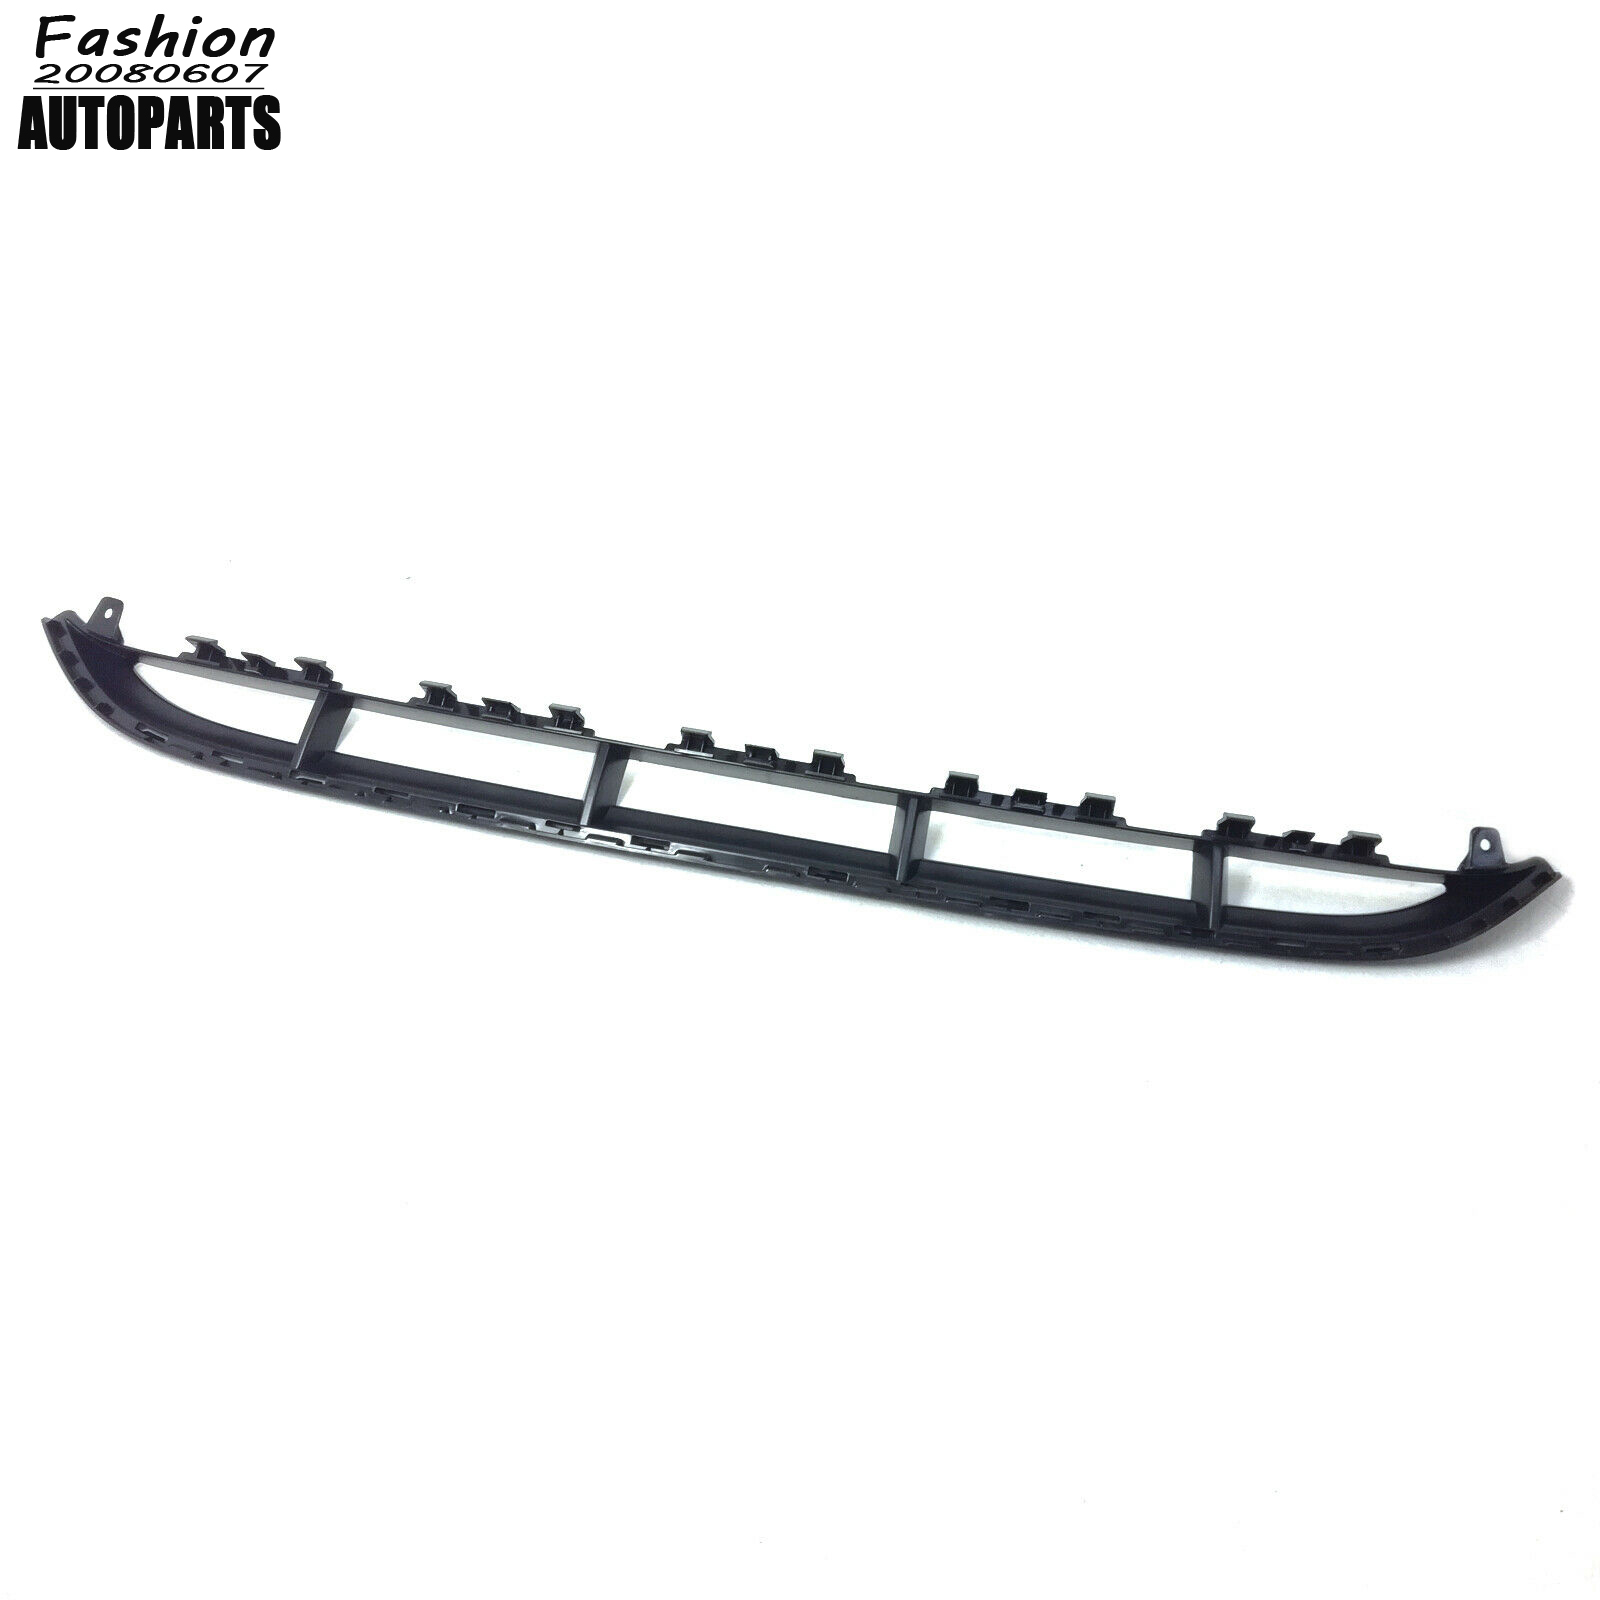 Brand New Black Front Lower bumper Grill Grille For Audi Q7 Sport Style 2010-2015 4L0 807 683 E